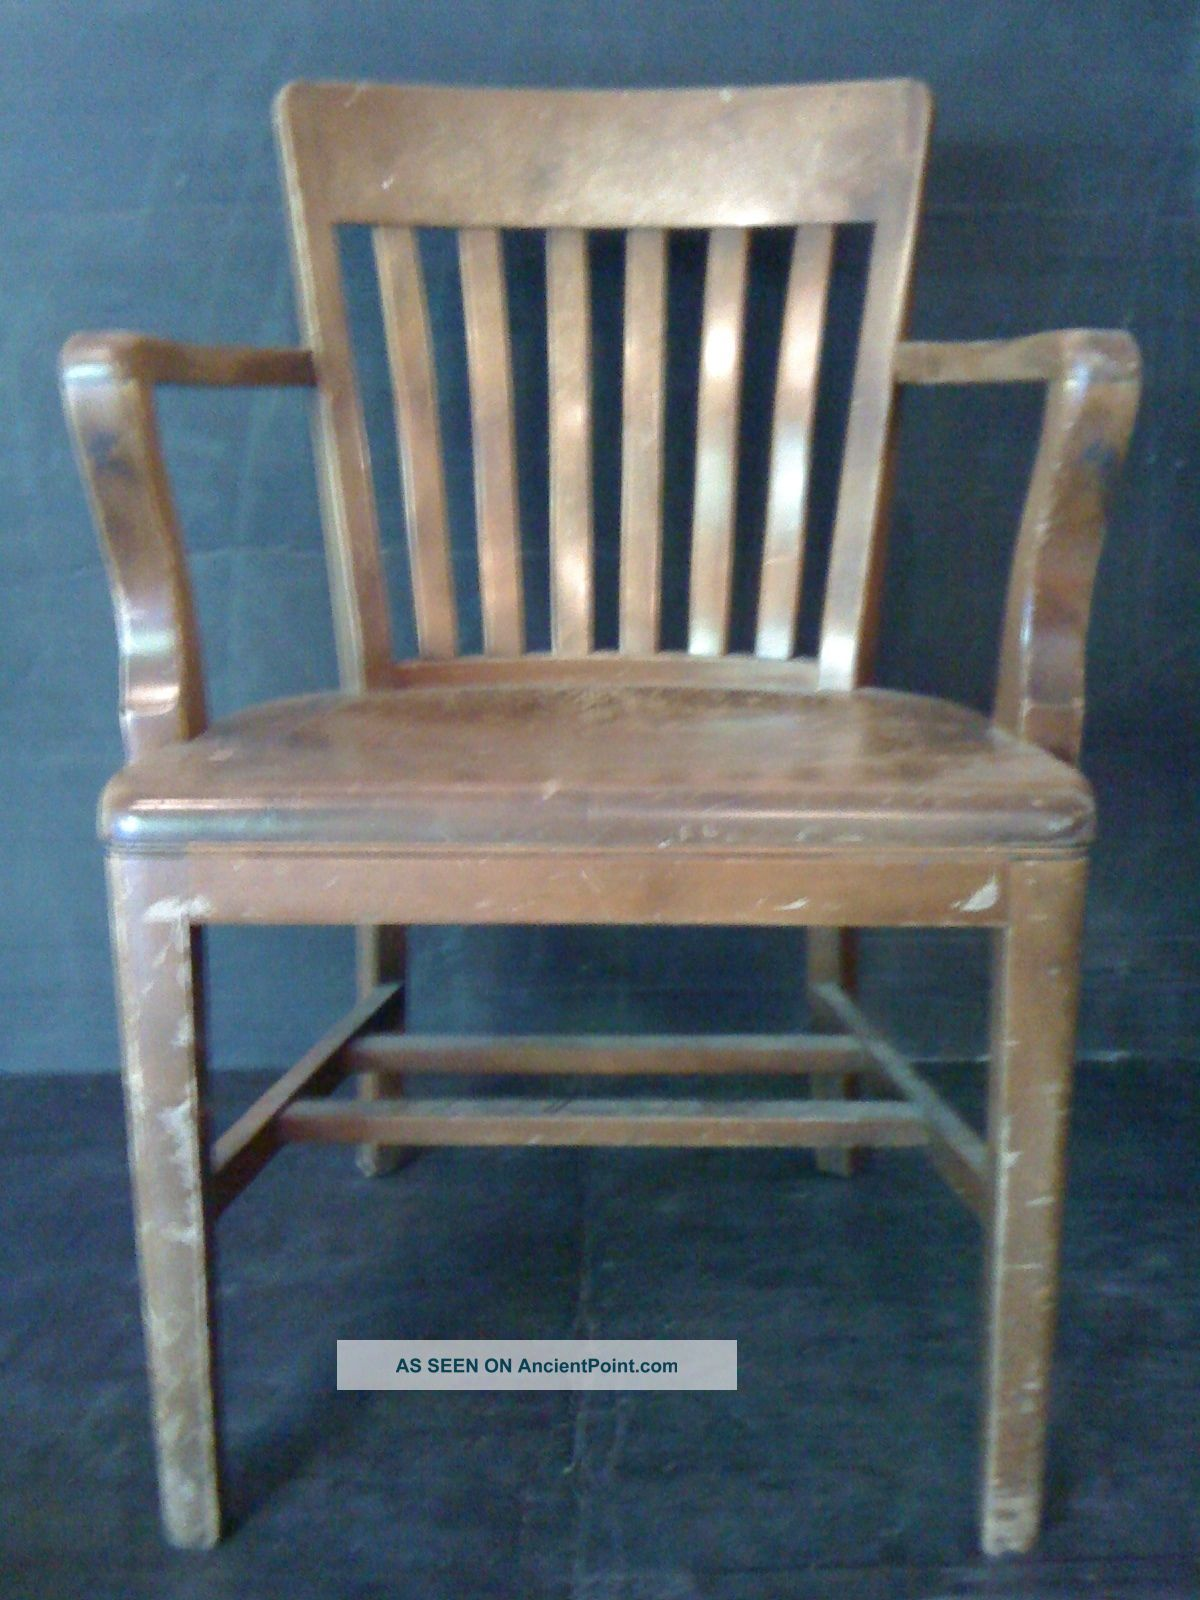 sikes chair company and a half slipcovers t cushion how to make watermelon baby cradle antique mission